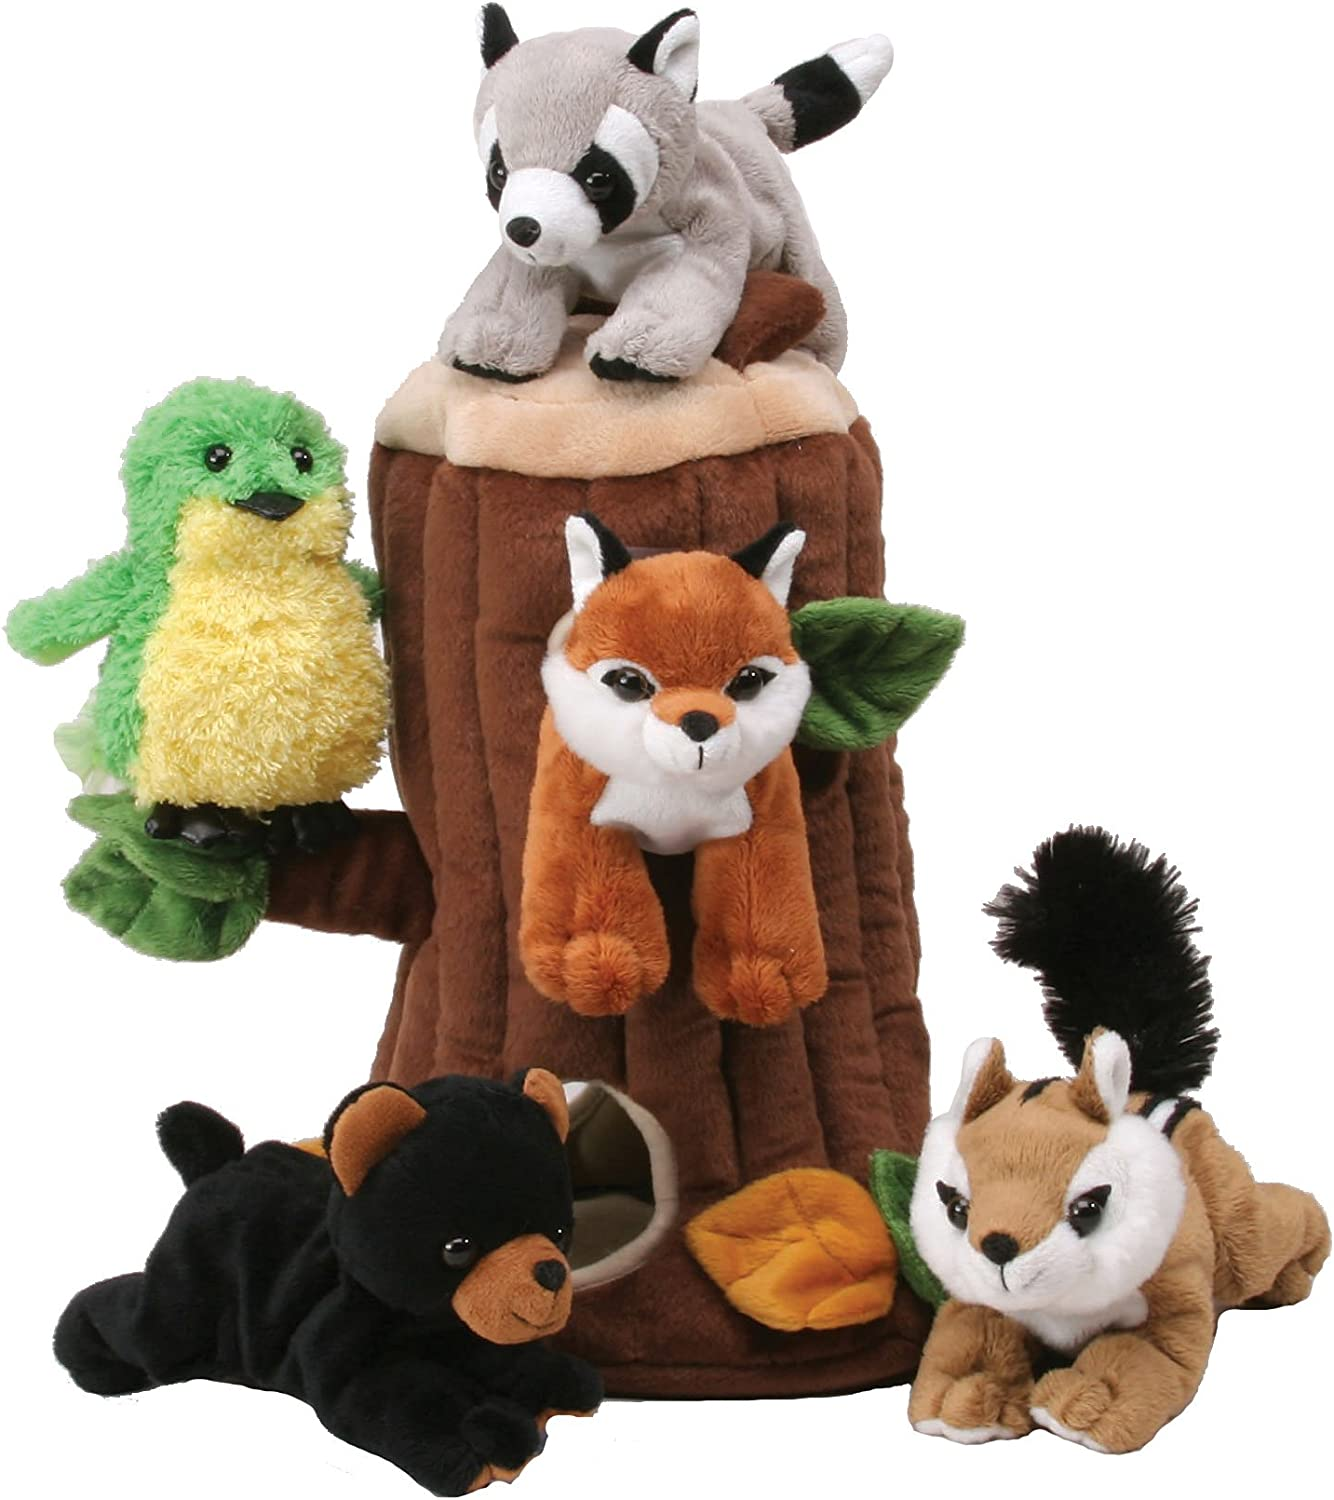 Plush Treehouse Mesa Mall with Animals Cheap mail order shopping - Forest Five 5 Stuffed